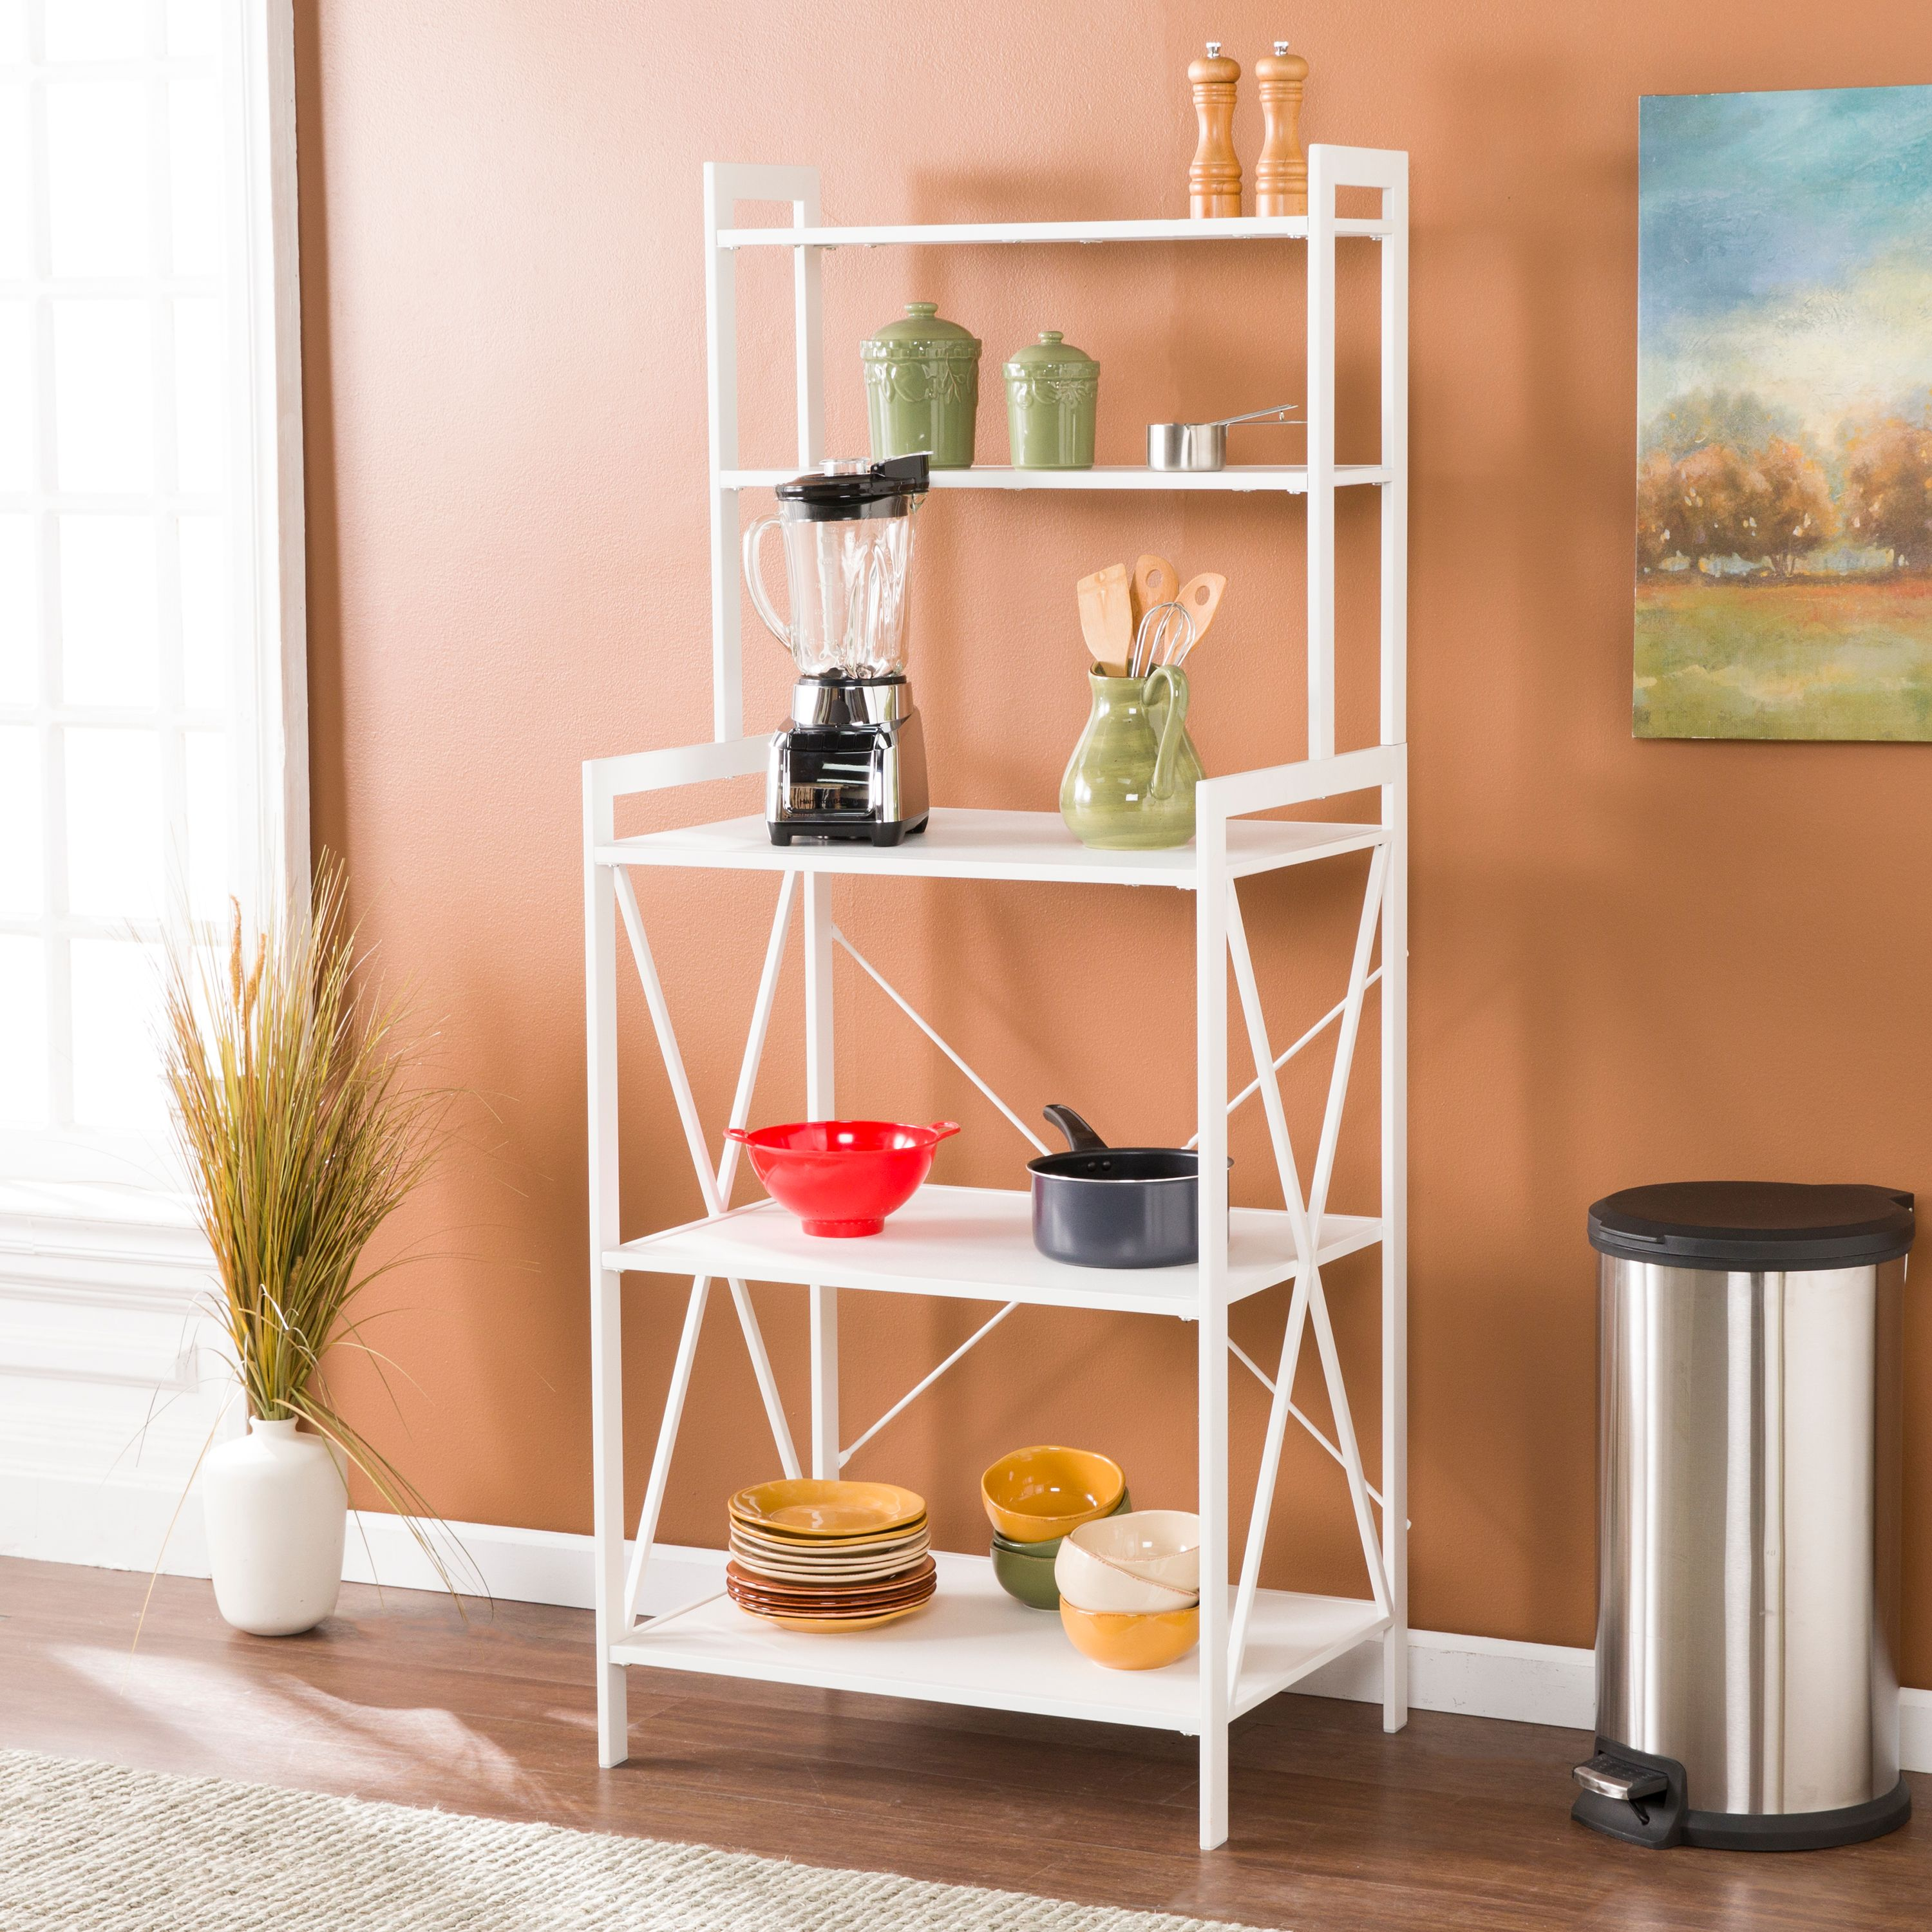 Southern Enterprises Patci Mixed Material Bakers Rack, Modern Farmhouse Style, White